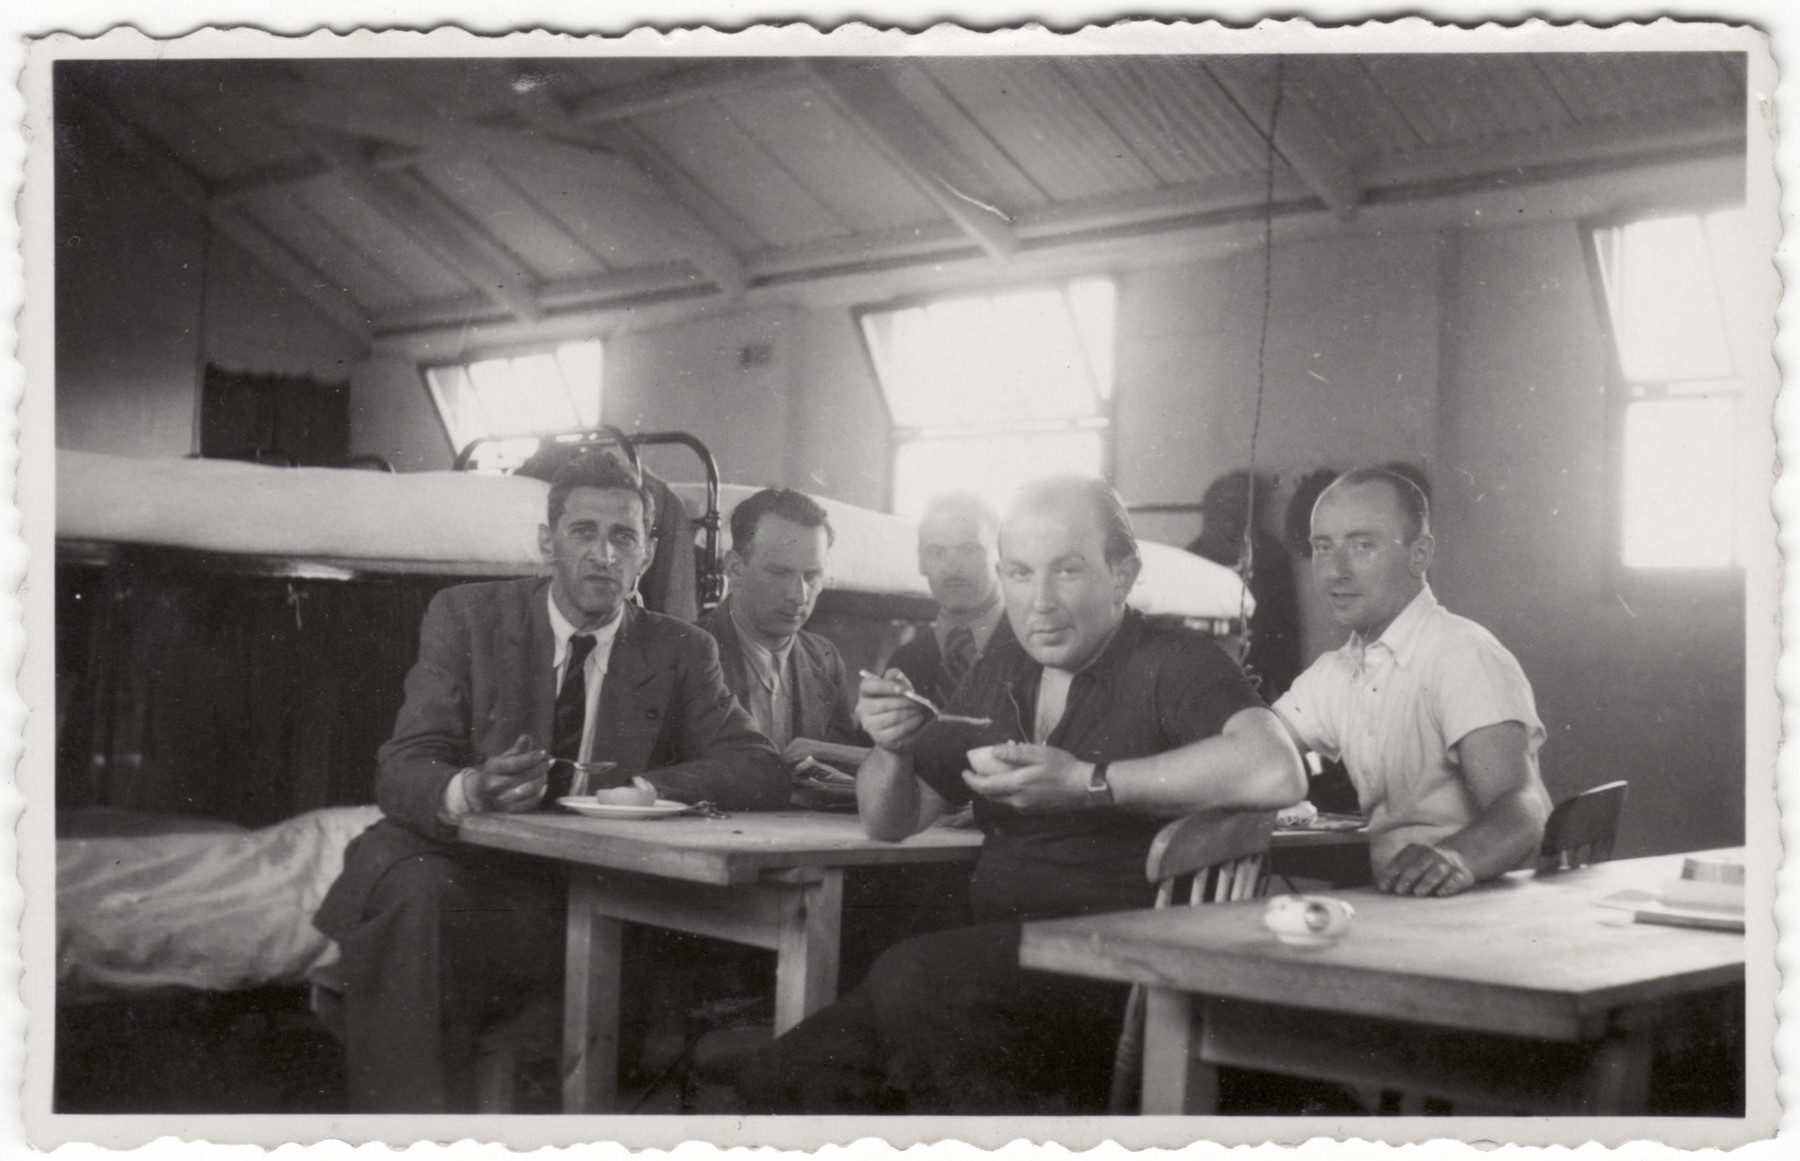 Jewish refugees eat a meal in their barracks in the Kitchener refugee camp.  Siegfried Kulmann is pictured second from the right.